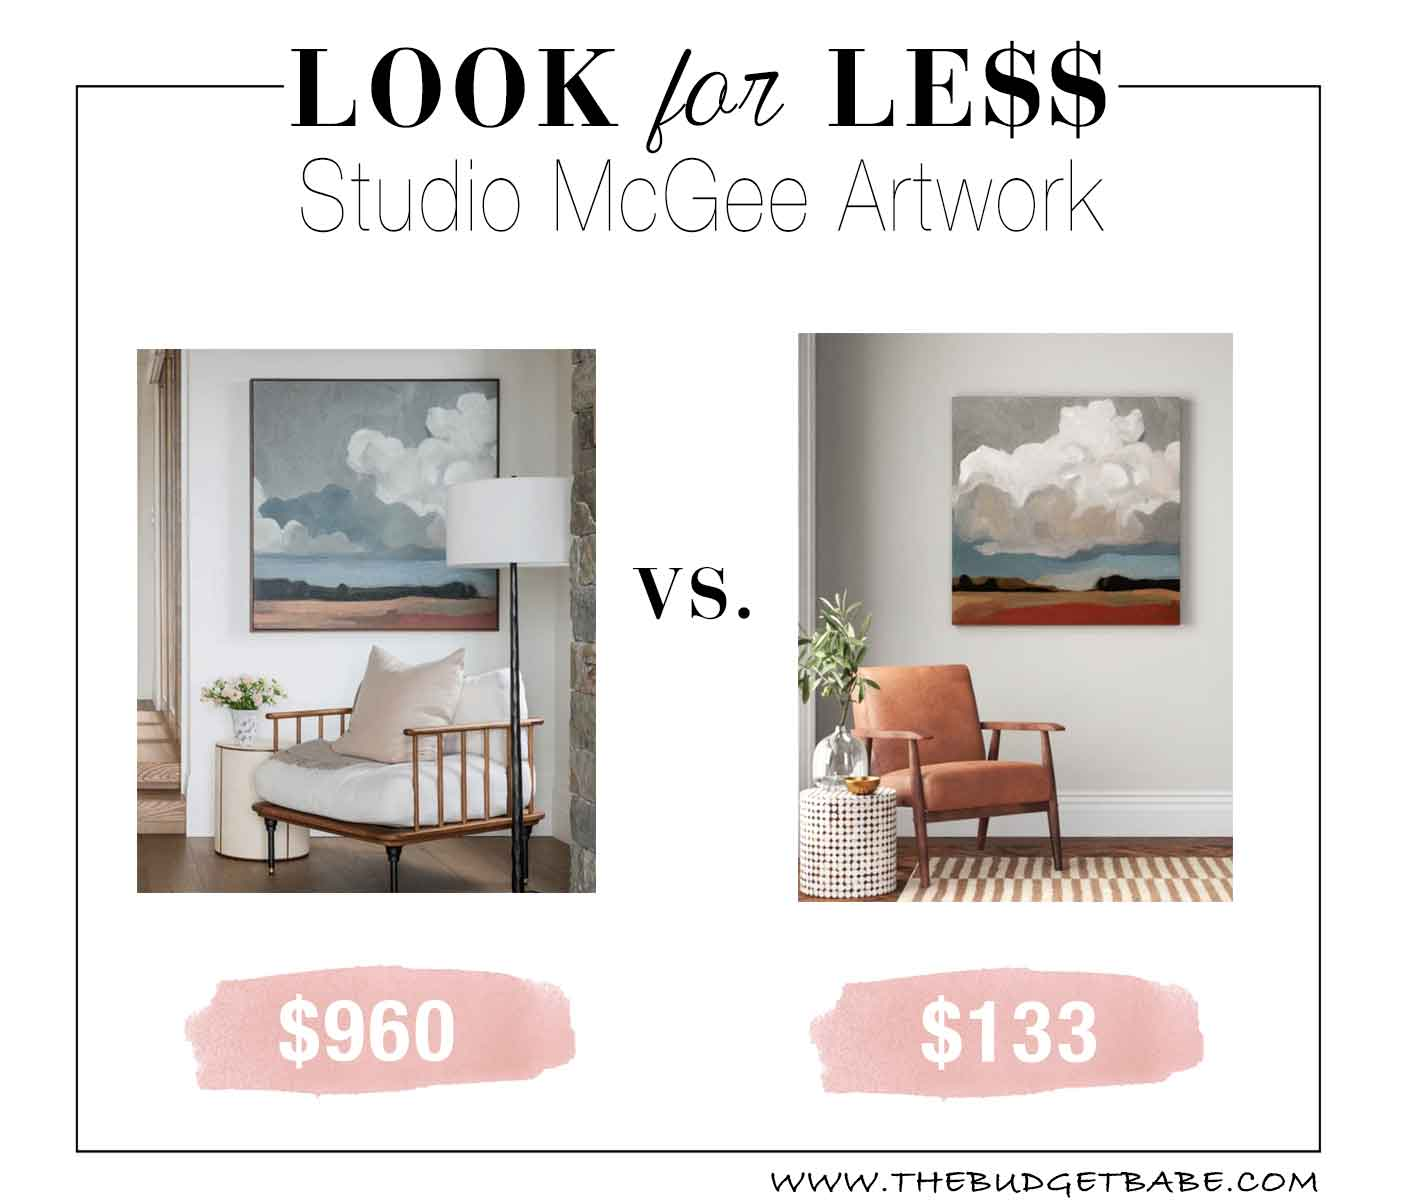 Studio McGee cloud formation artwork - this painting on Joss & Main looks so similar!